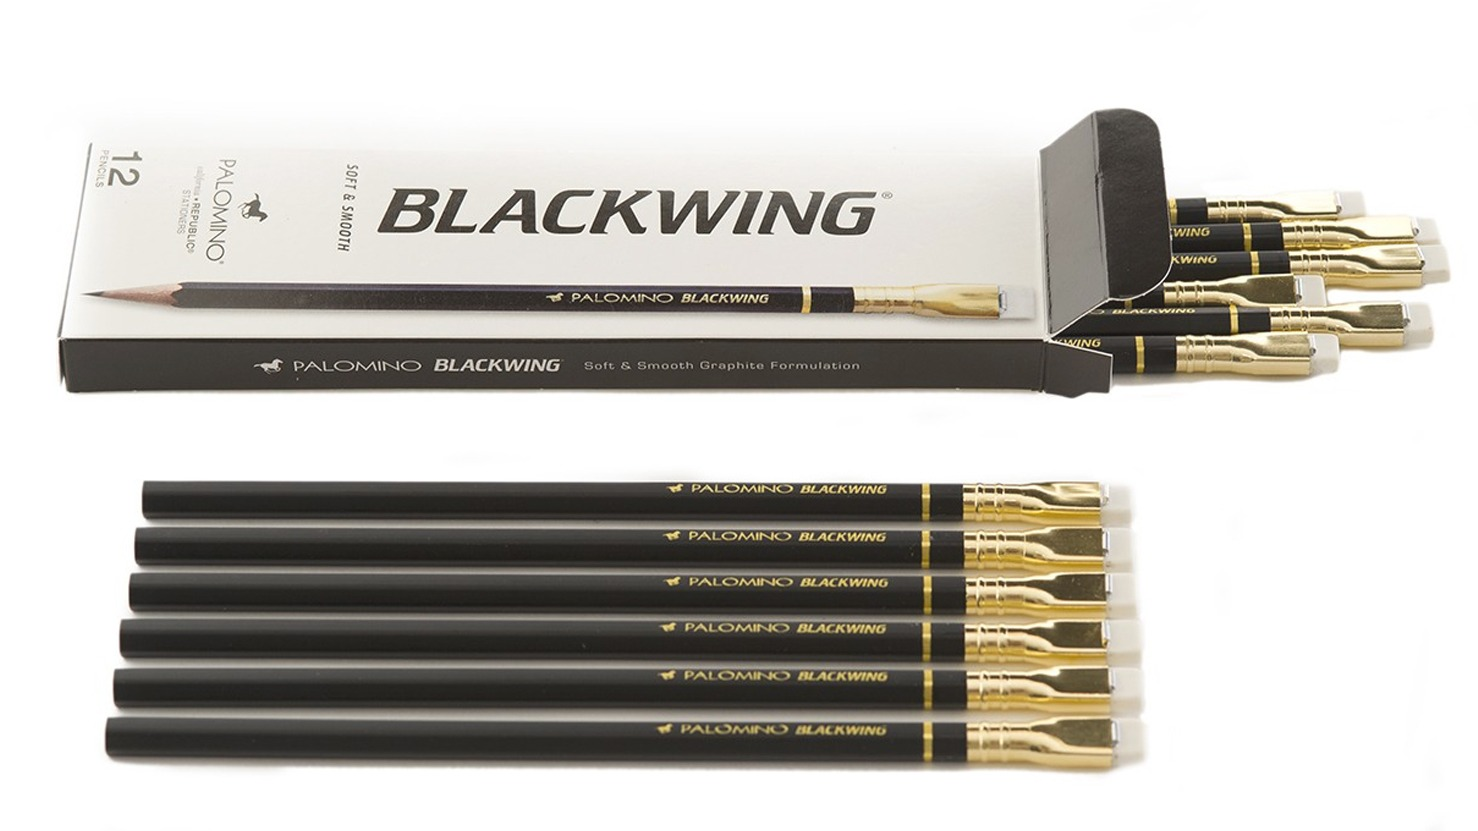 Blackwing Pencil